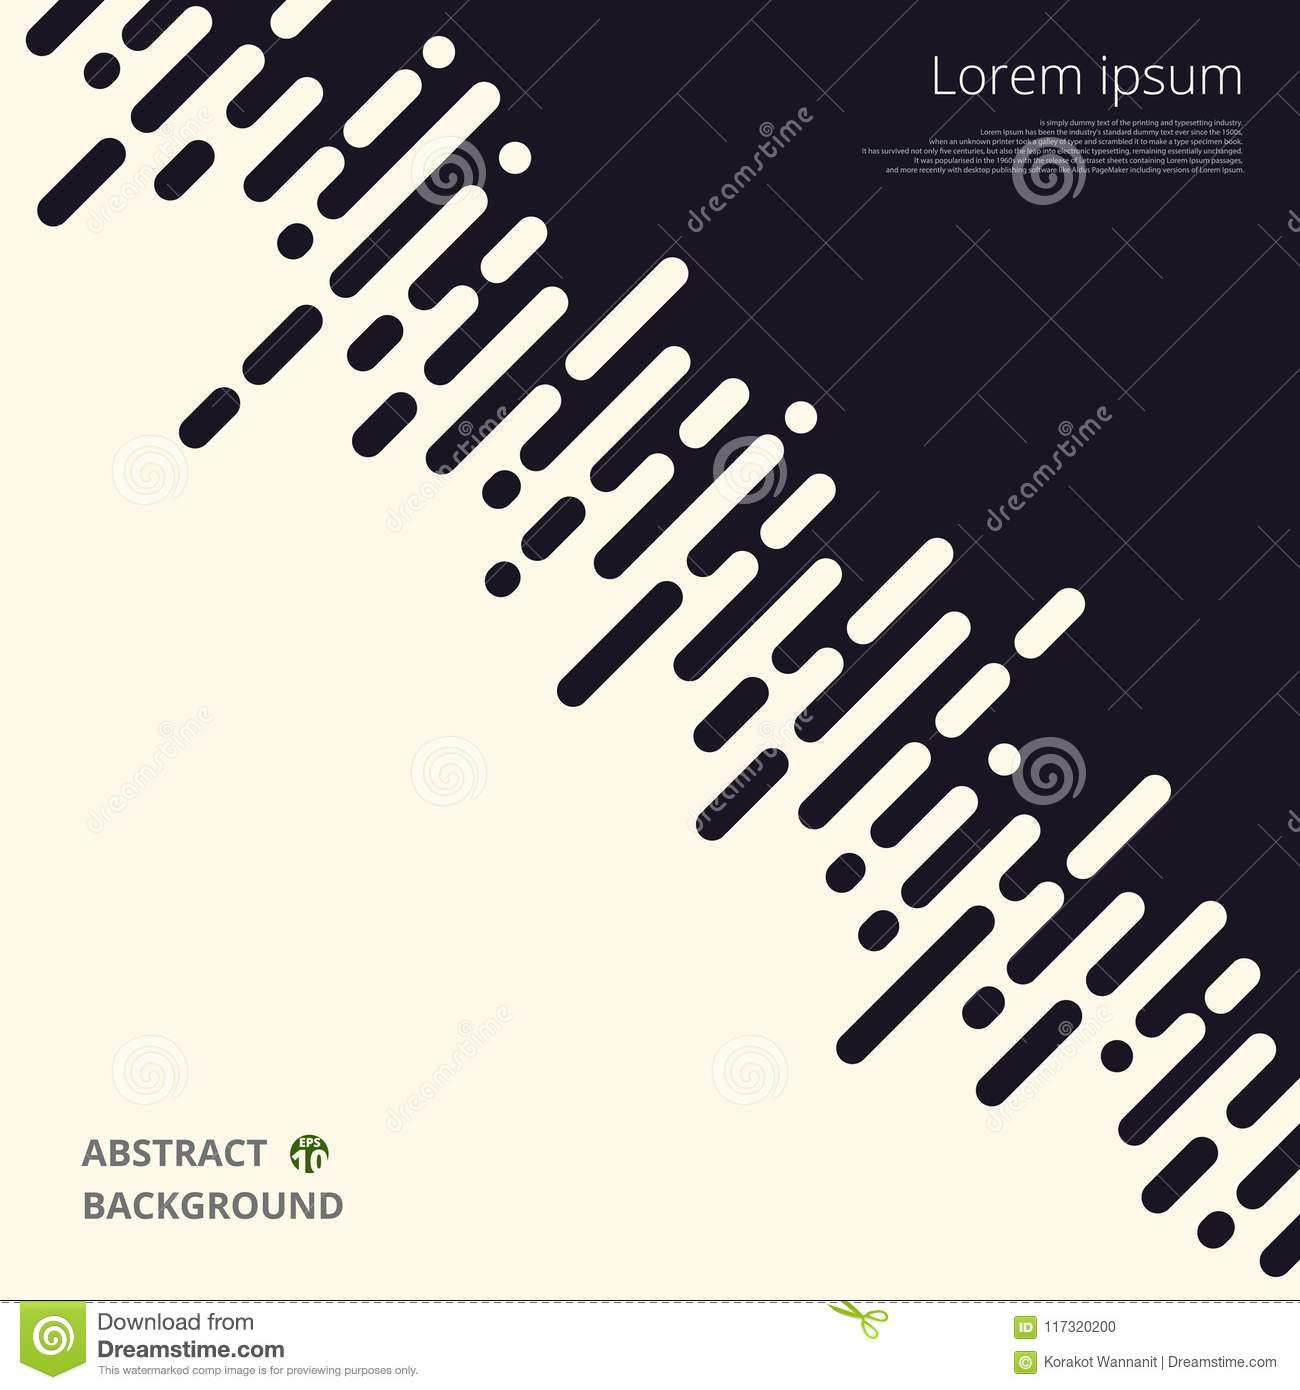 Abstract of black and white stripe lines for business presentation background.